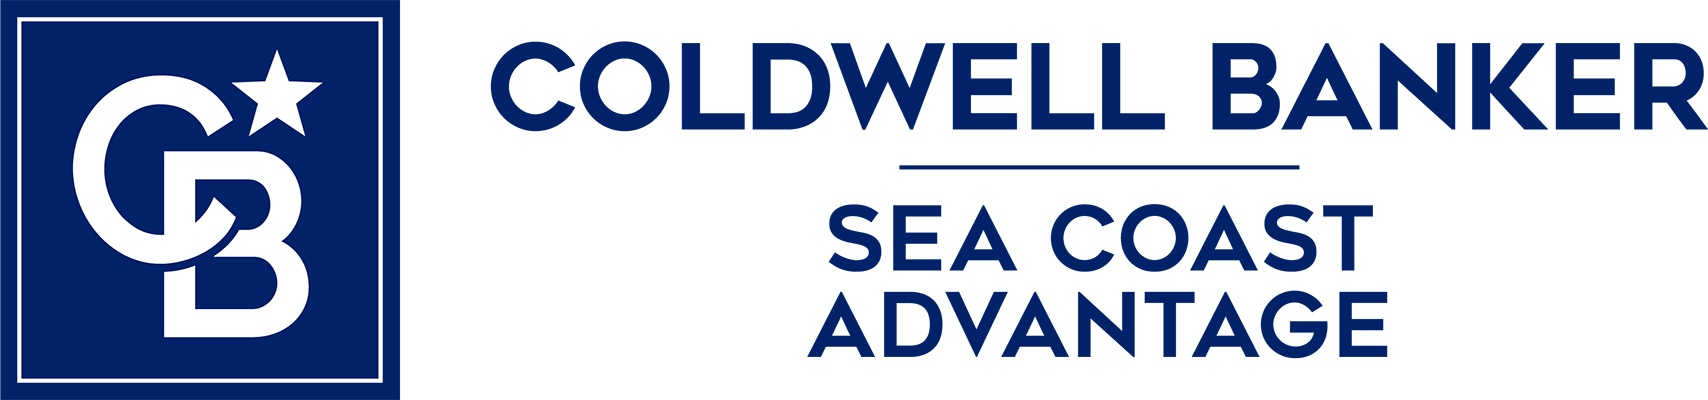 Domenico Grillo - Coldwell Banker Sea Coast Advantage Realty